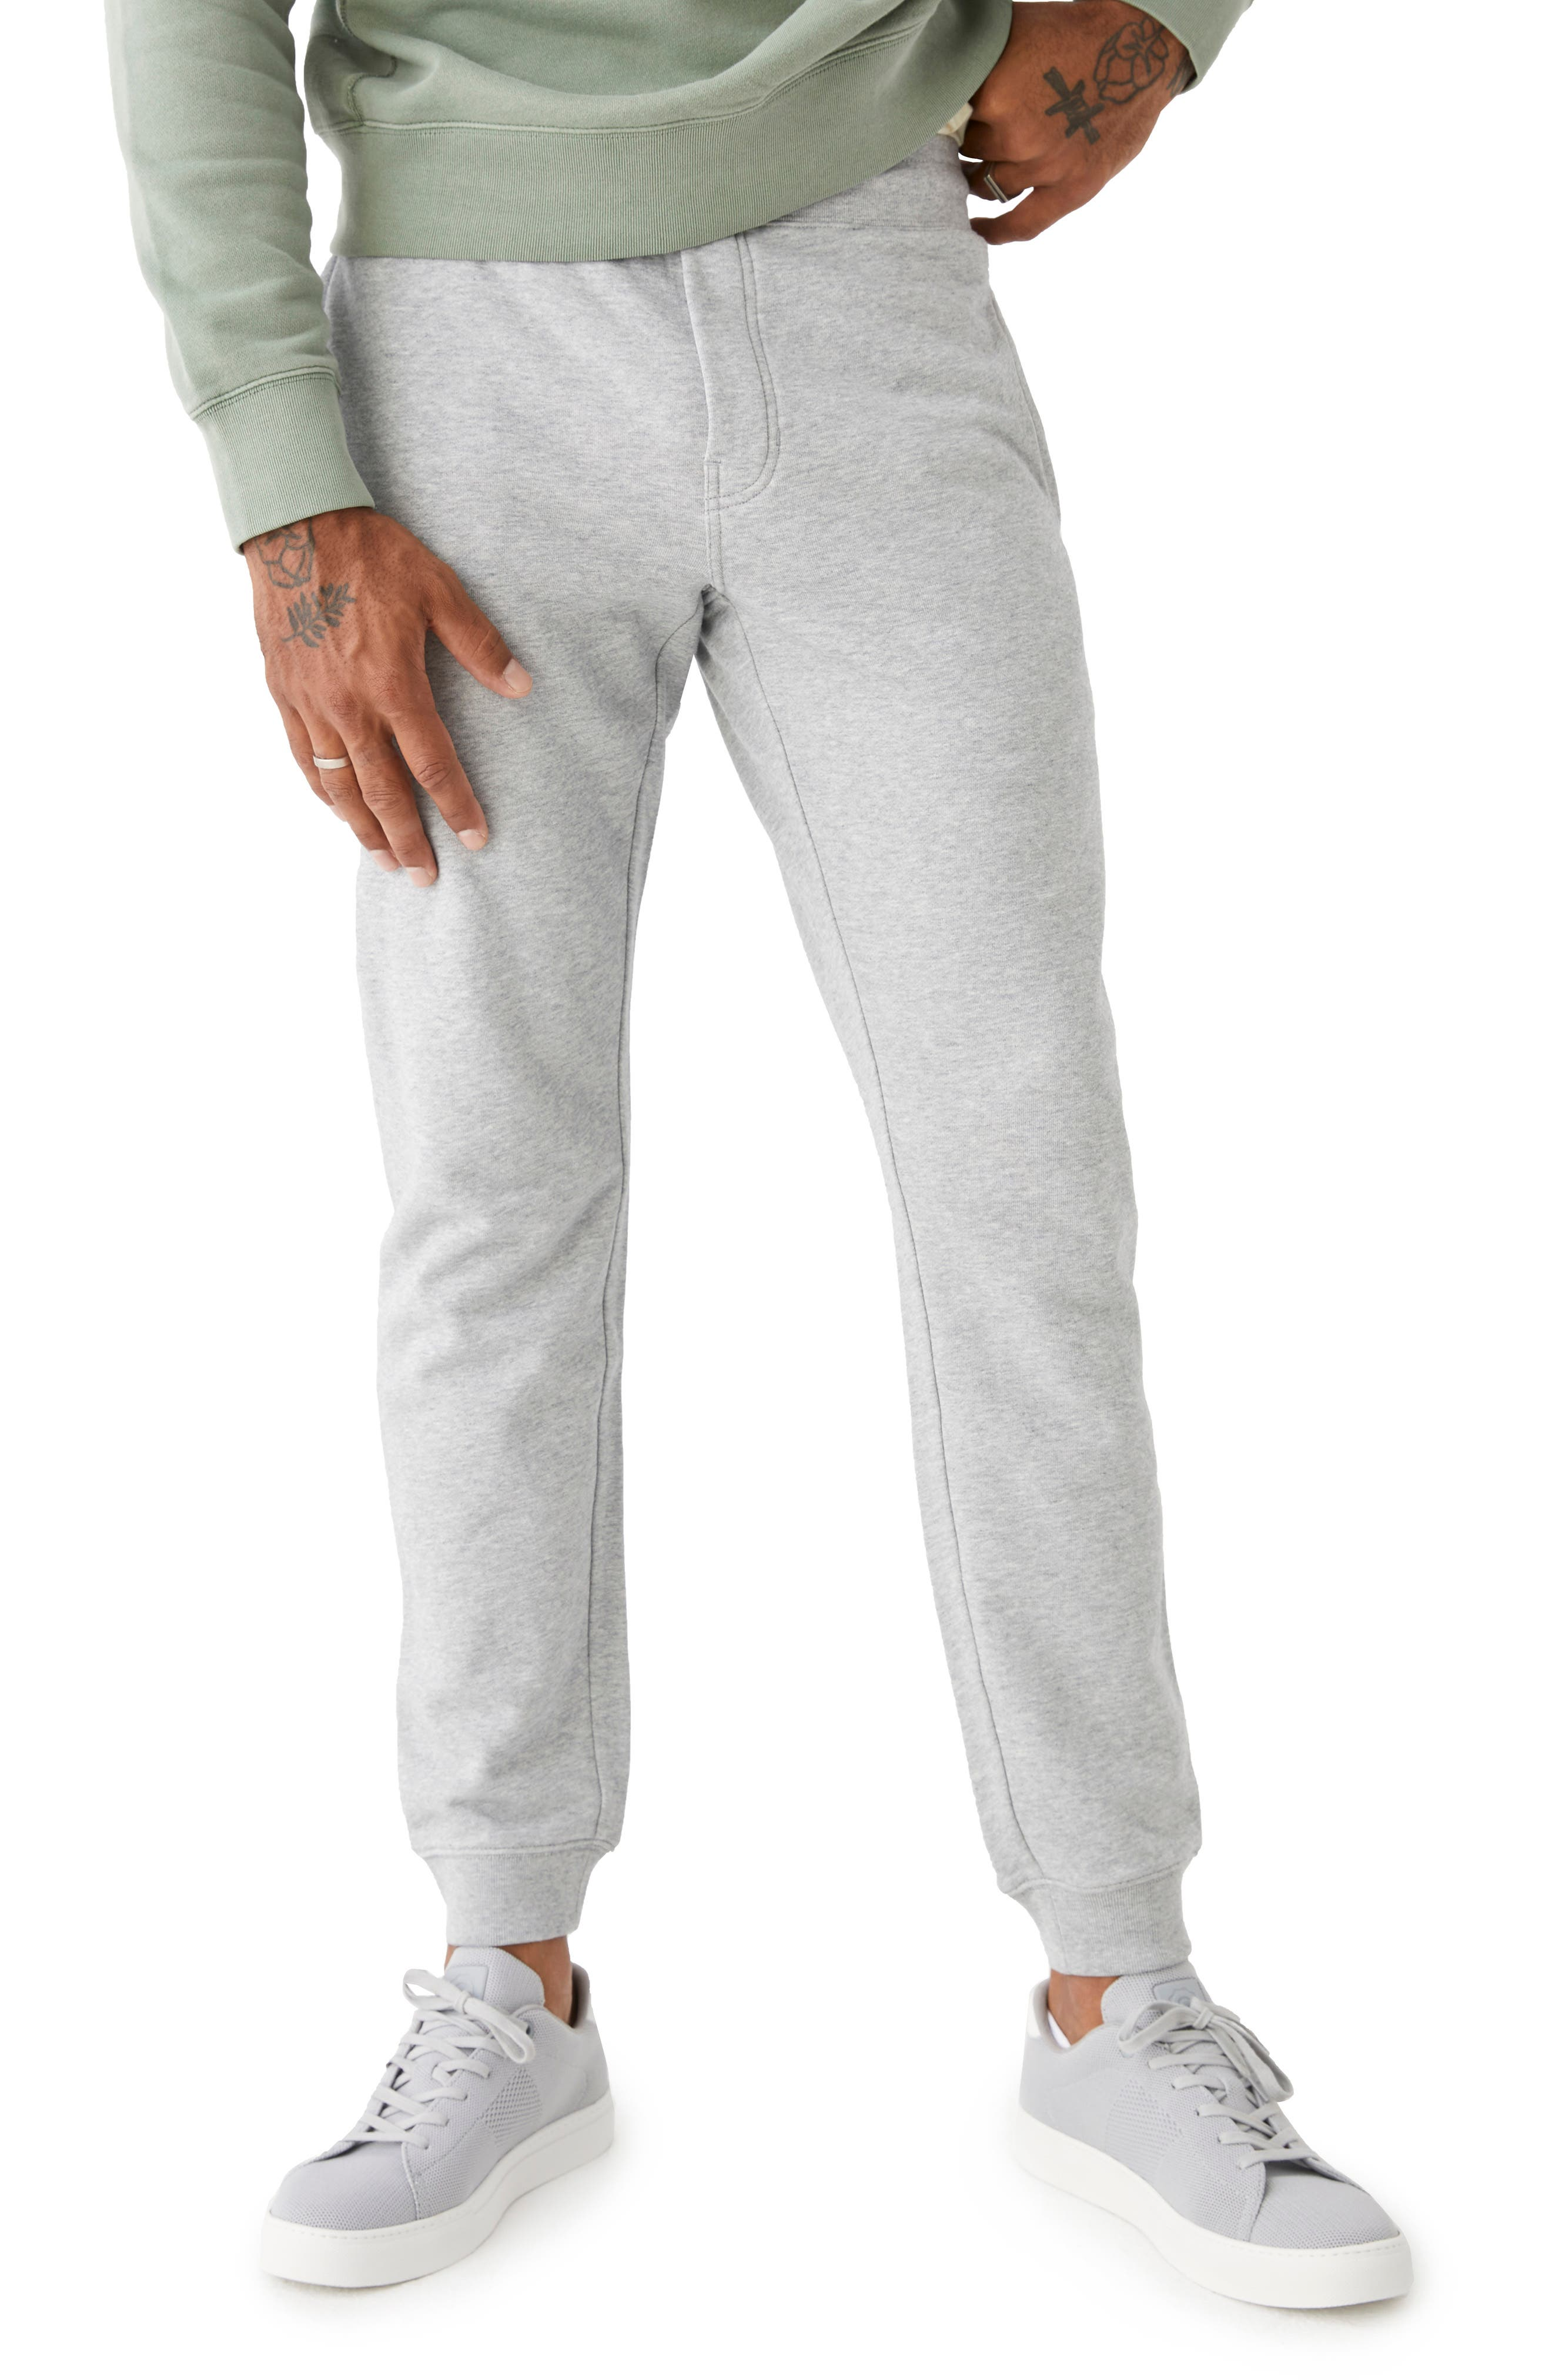 The 76 Organic Cotton French Terry Joggers